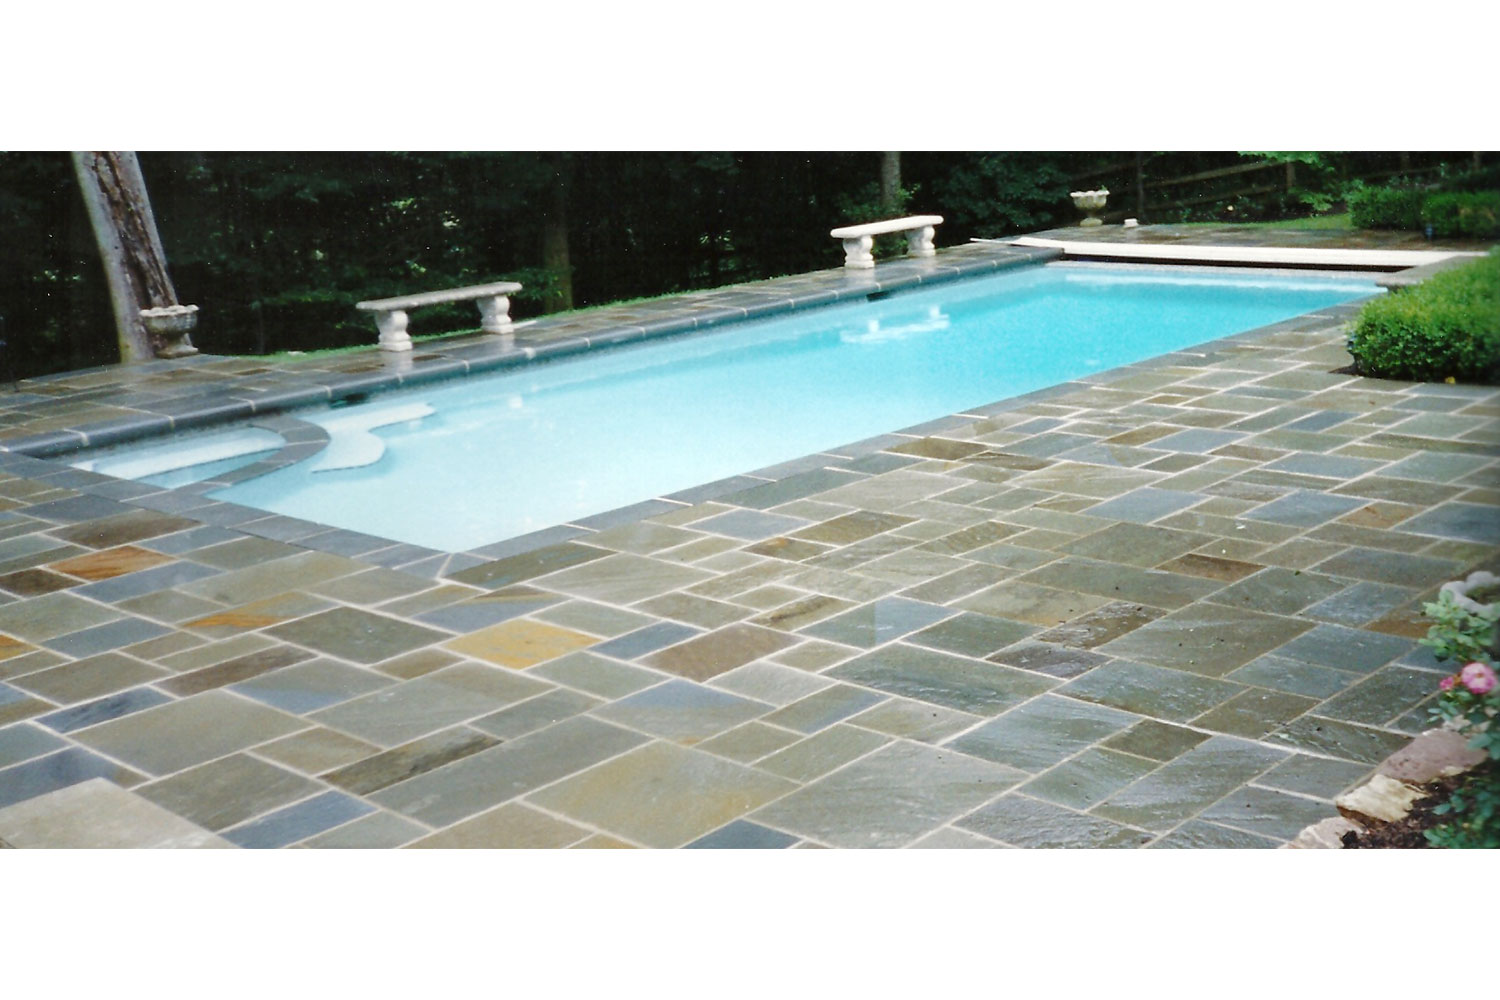 Renovation: Bluestone Deck, Coping Tile and Plaster, Washington Crossing, PA